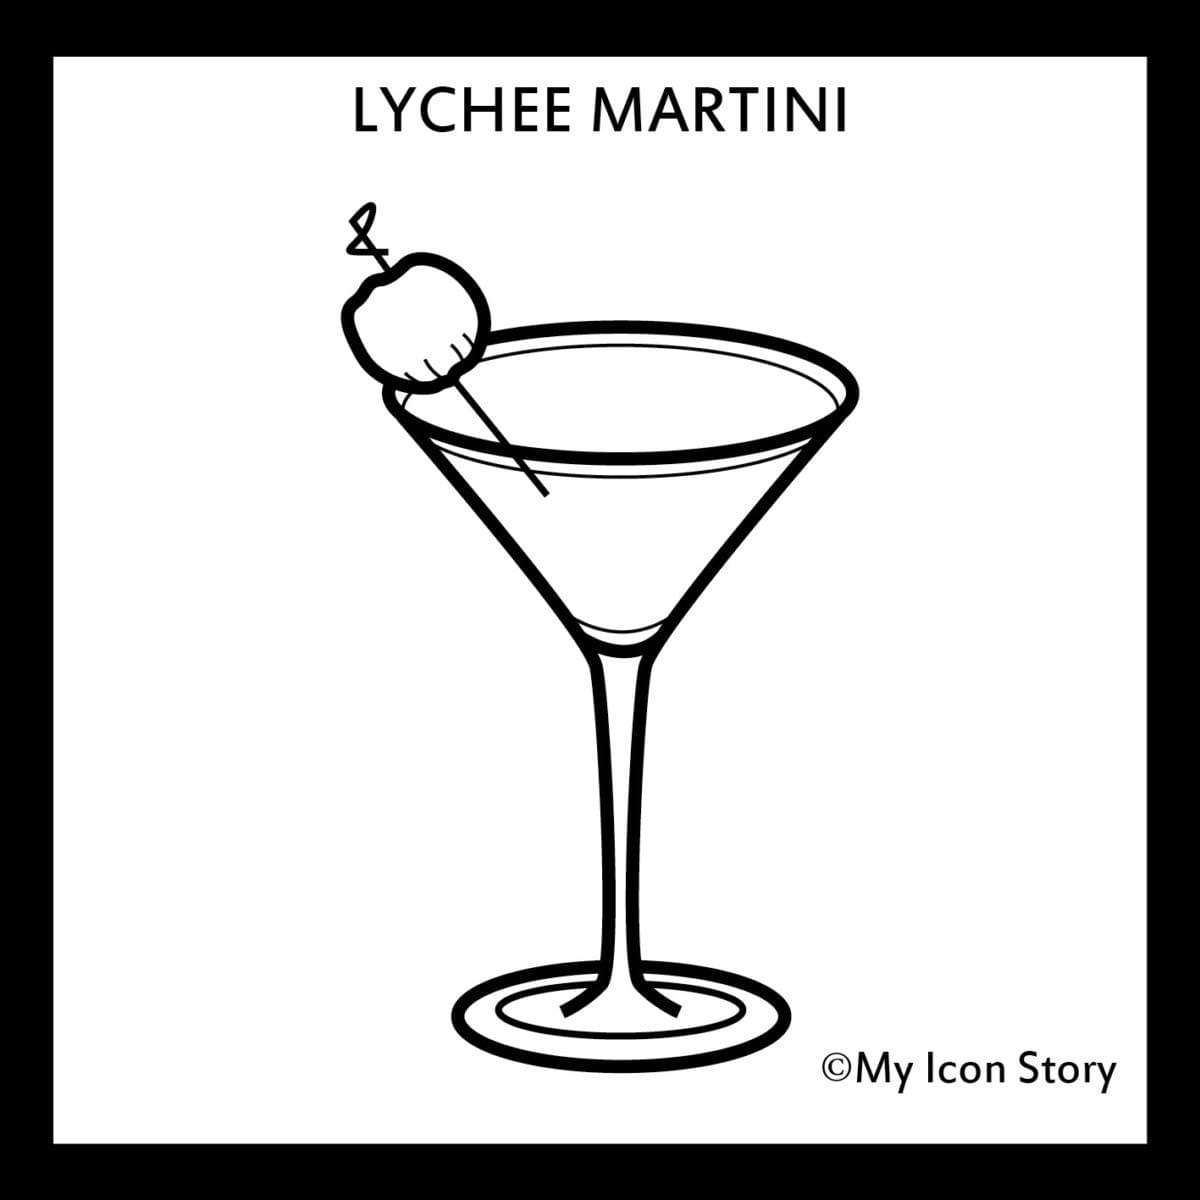 my icon story, sallee poinsette-nash, founder story, lychee martini, icon